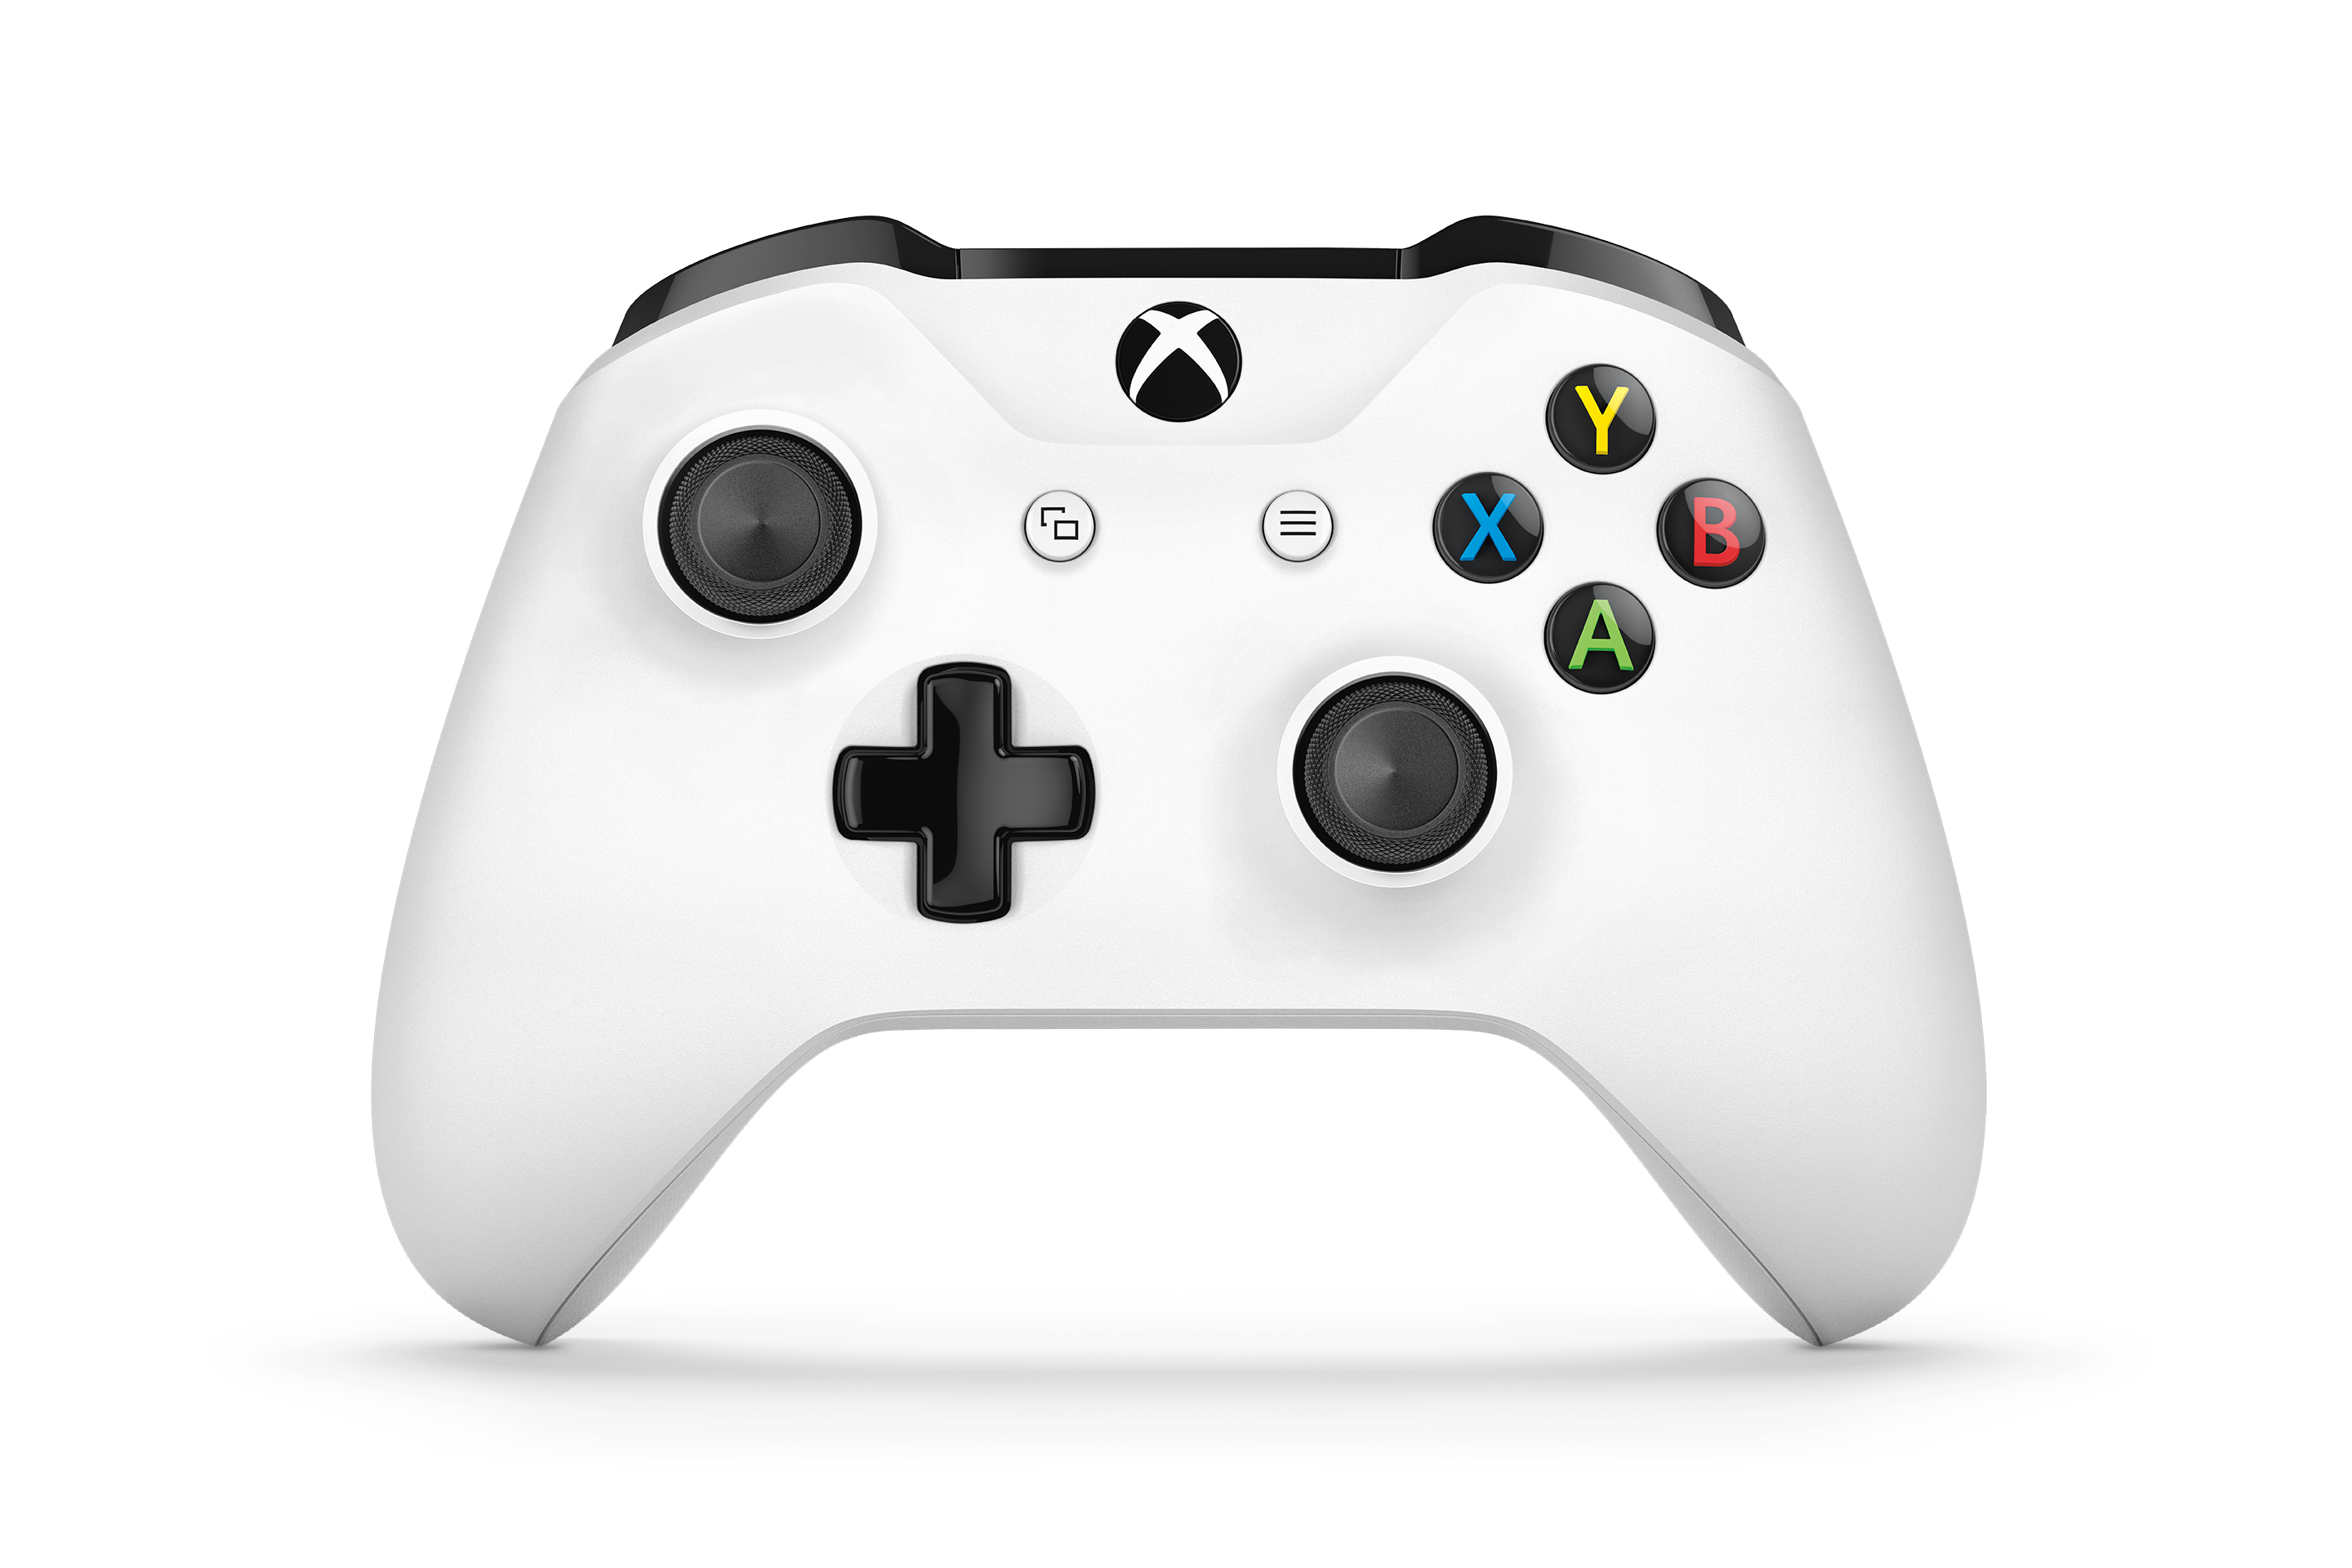 New Xbox One Game Controller : A closer look at all of the new xbox controllers shown off